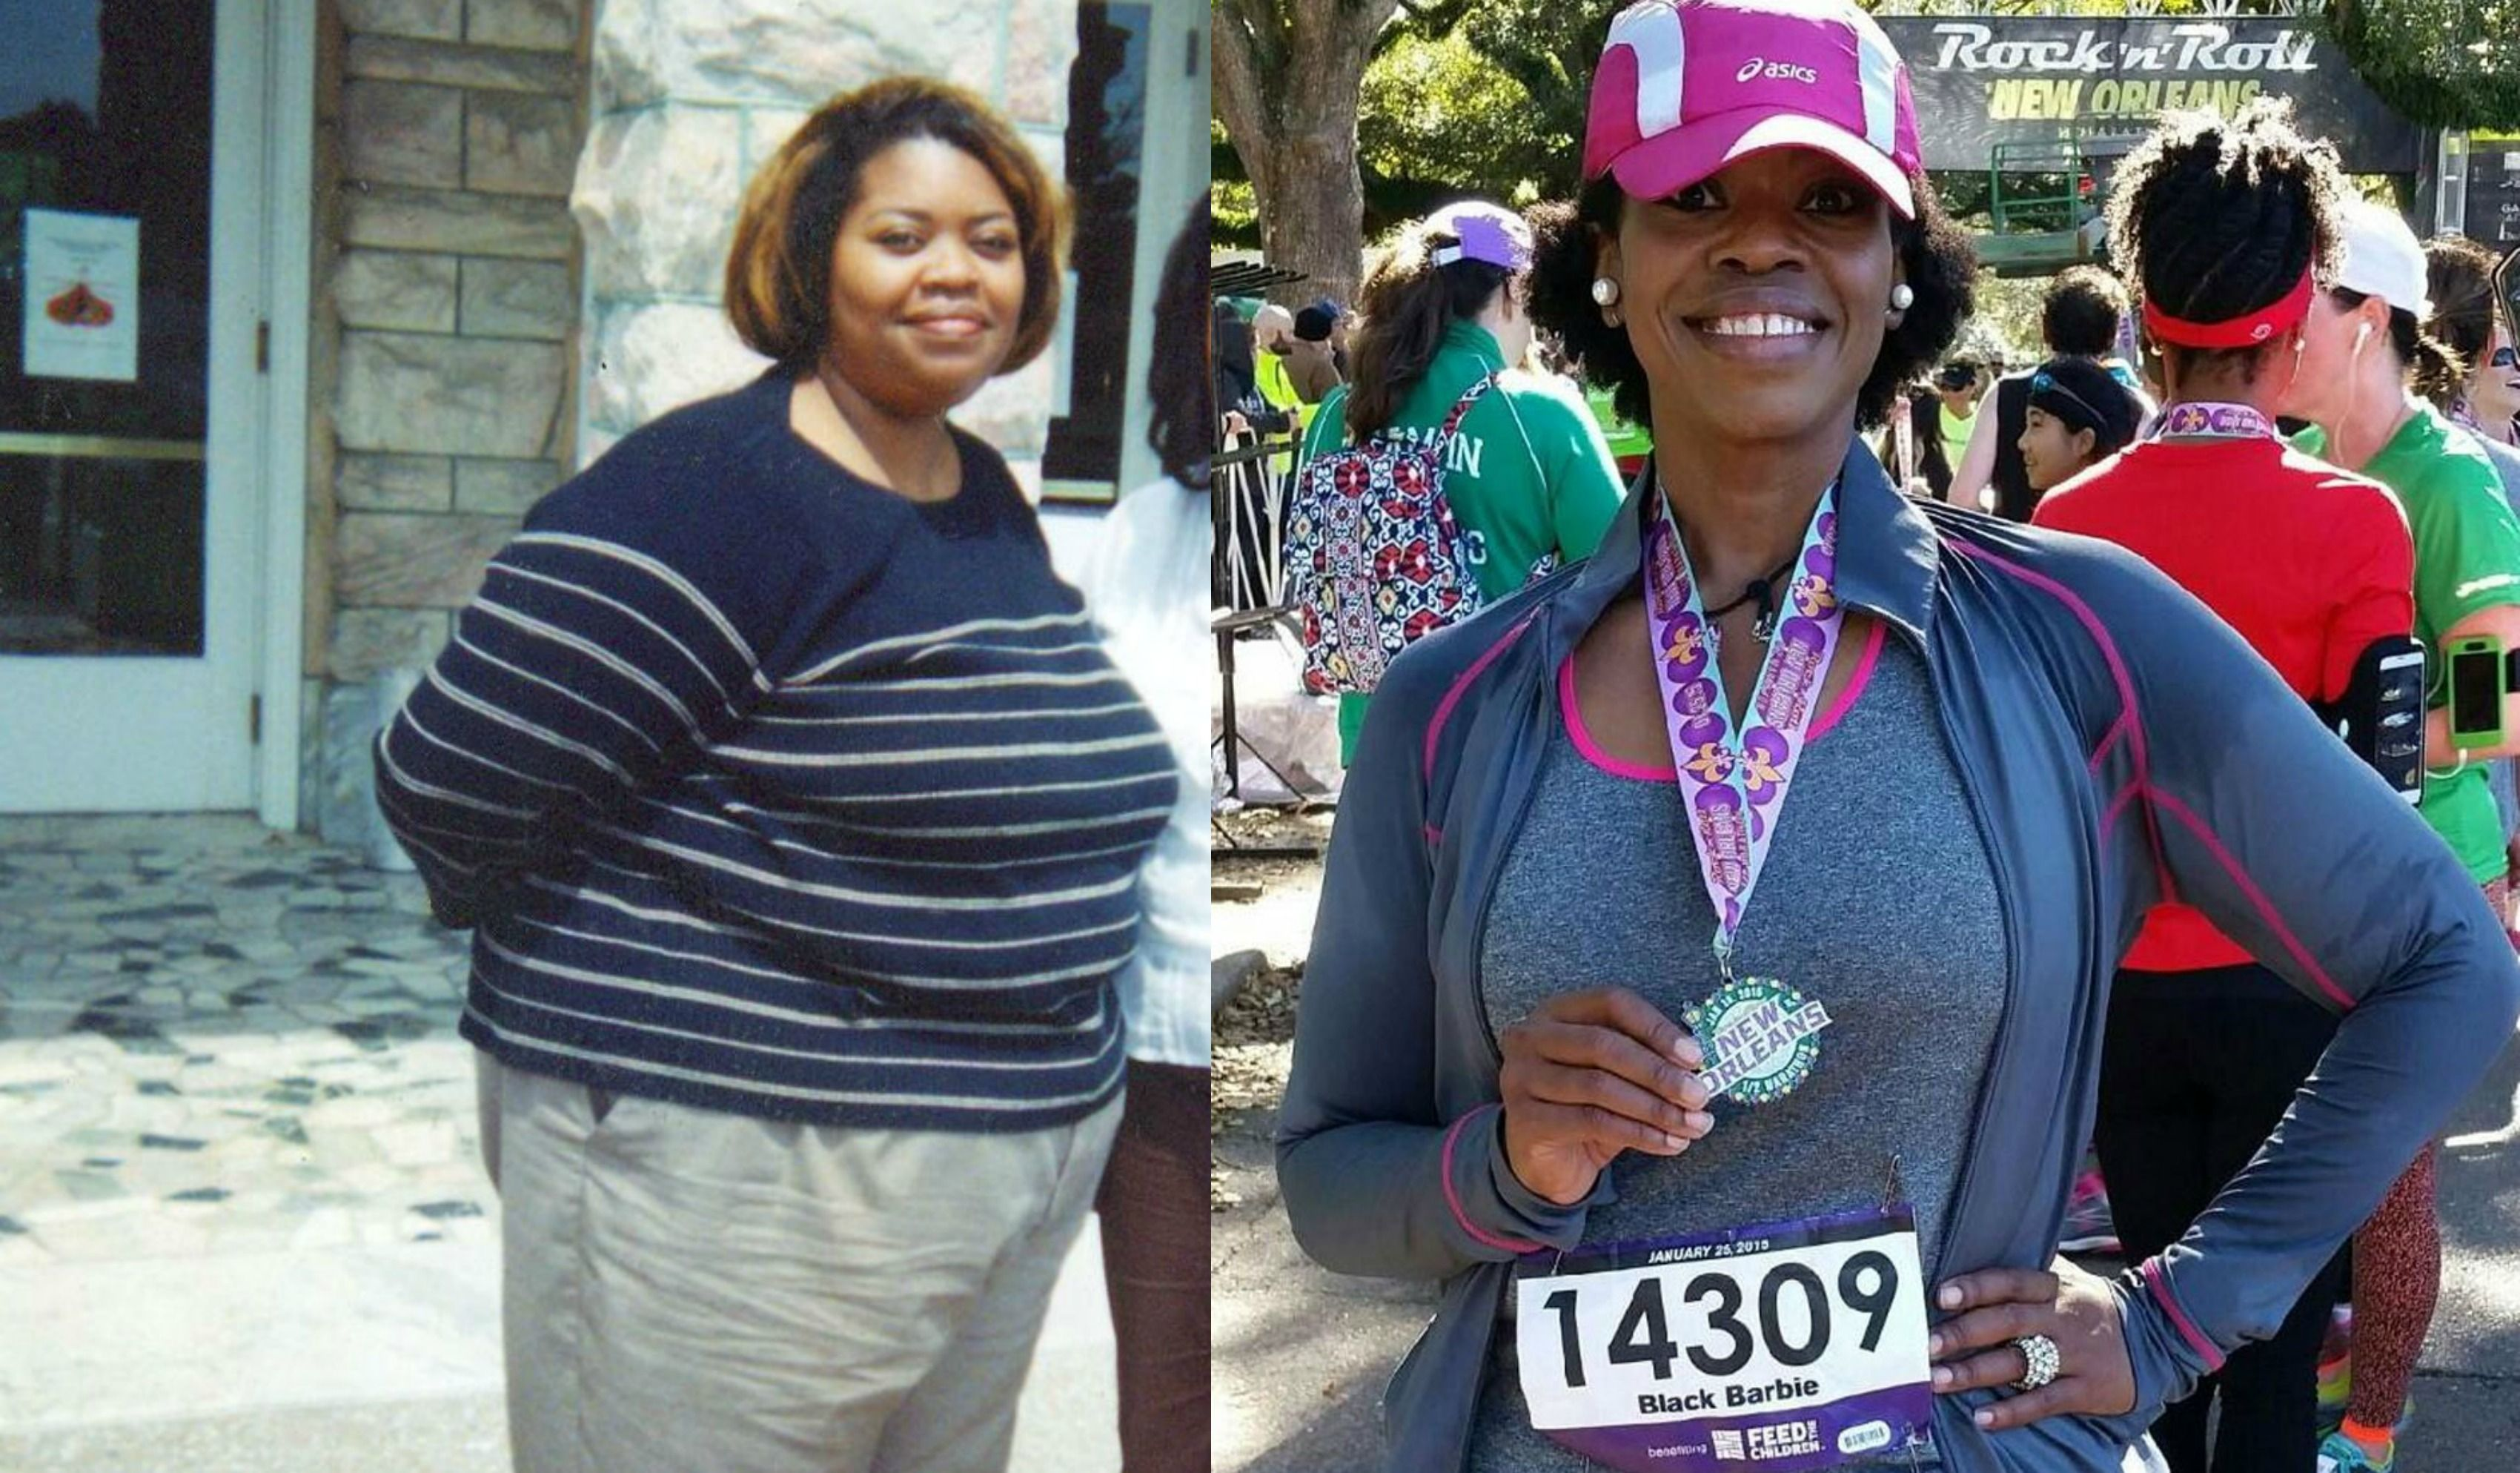 25 days lose weight